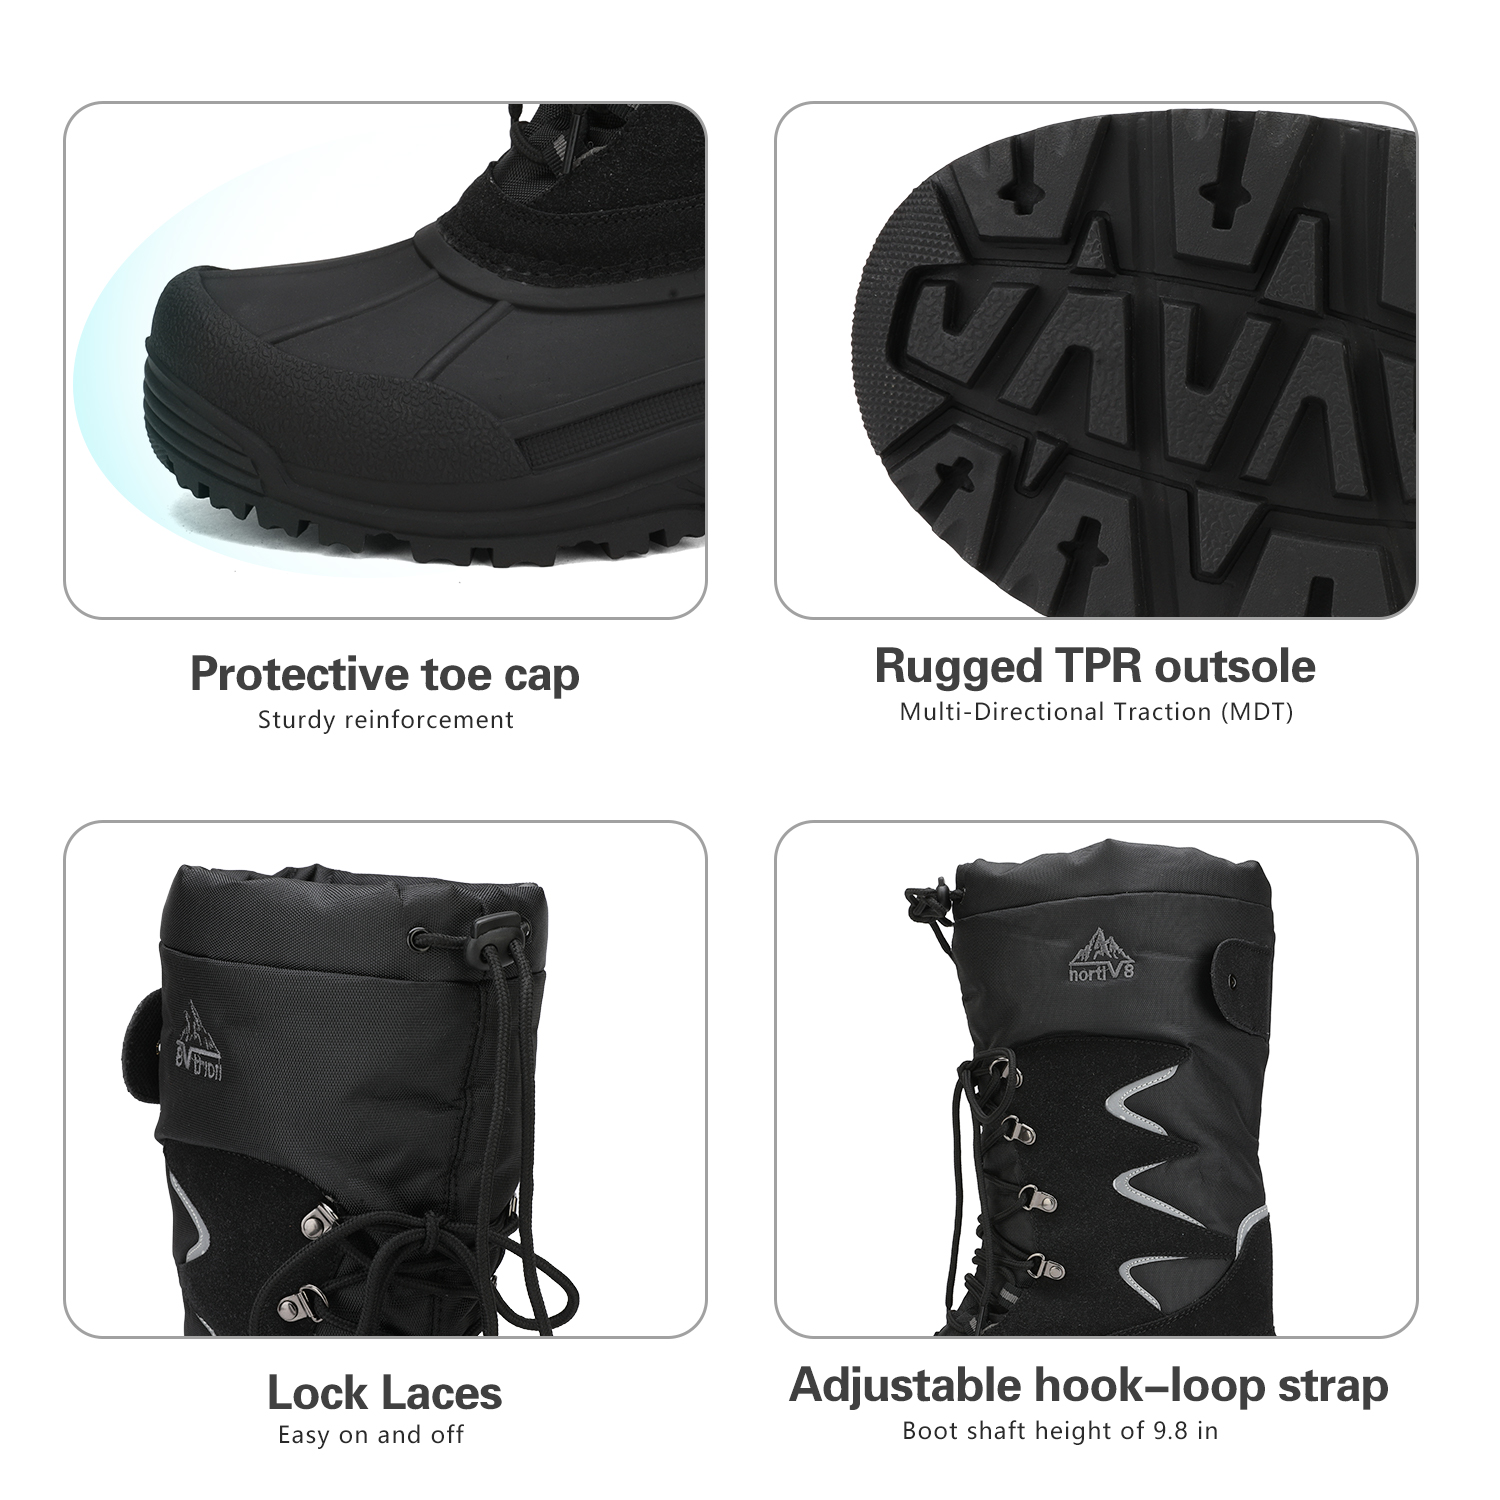 NORTIV-8-Men-039-s-Winter-Snow-Boots-Waterproof-Warm-Thermolite-Outdoor-Hiking-Boots thumbnail 12